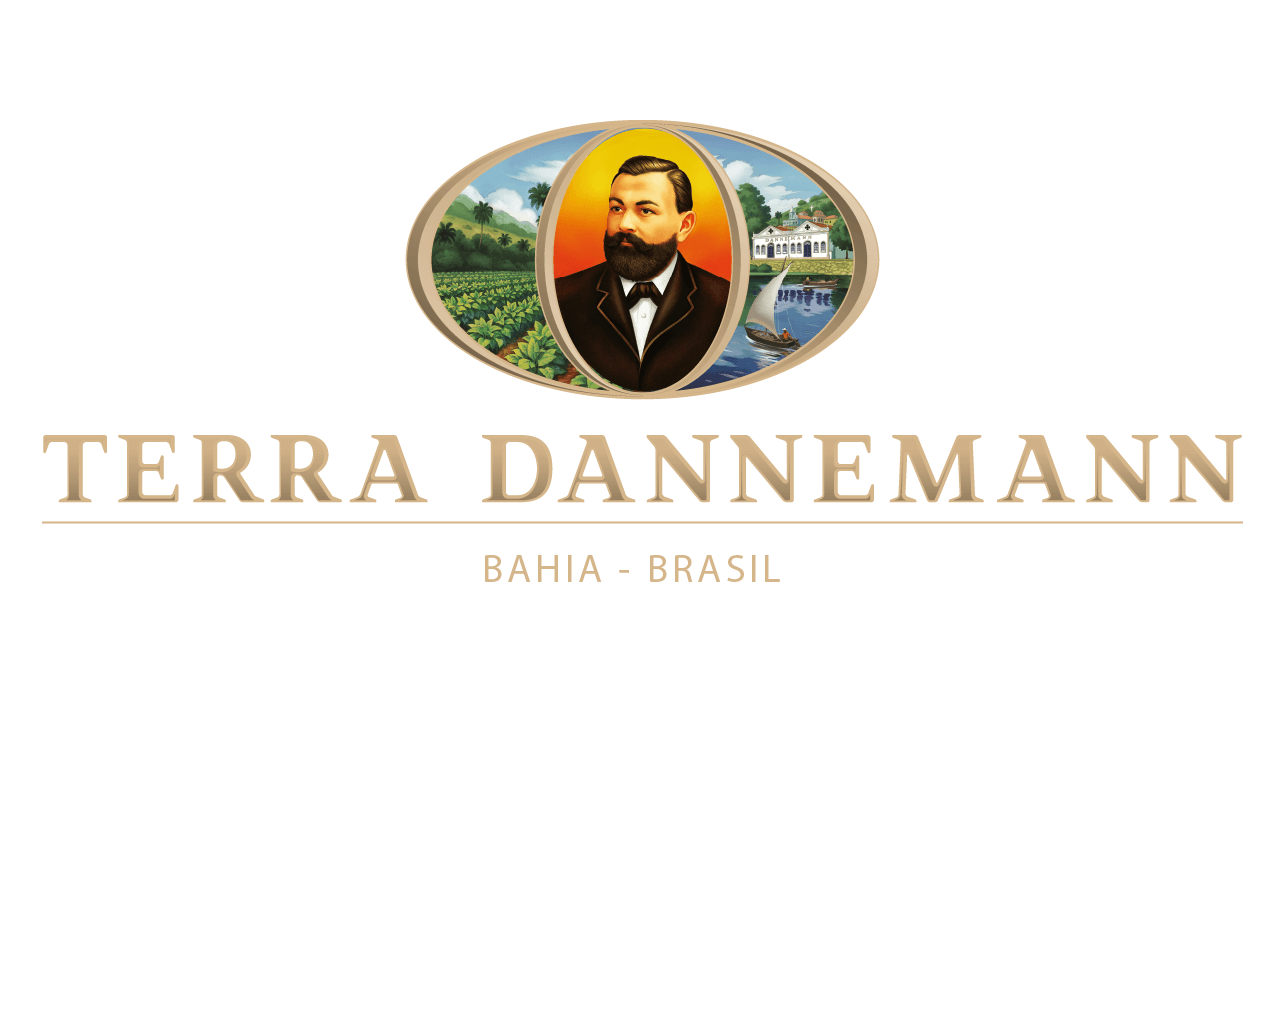 Terra DANNEMANN Brand - Tobacco • Excellence • Craft